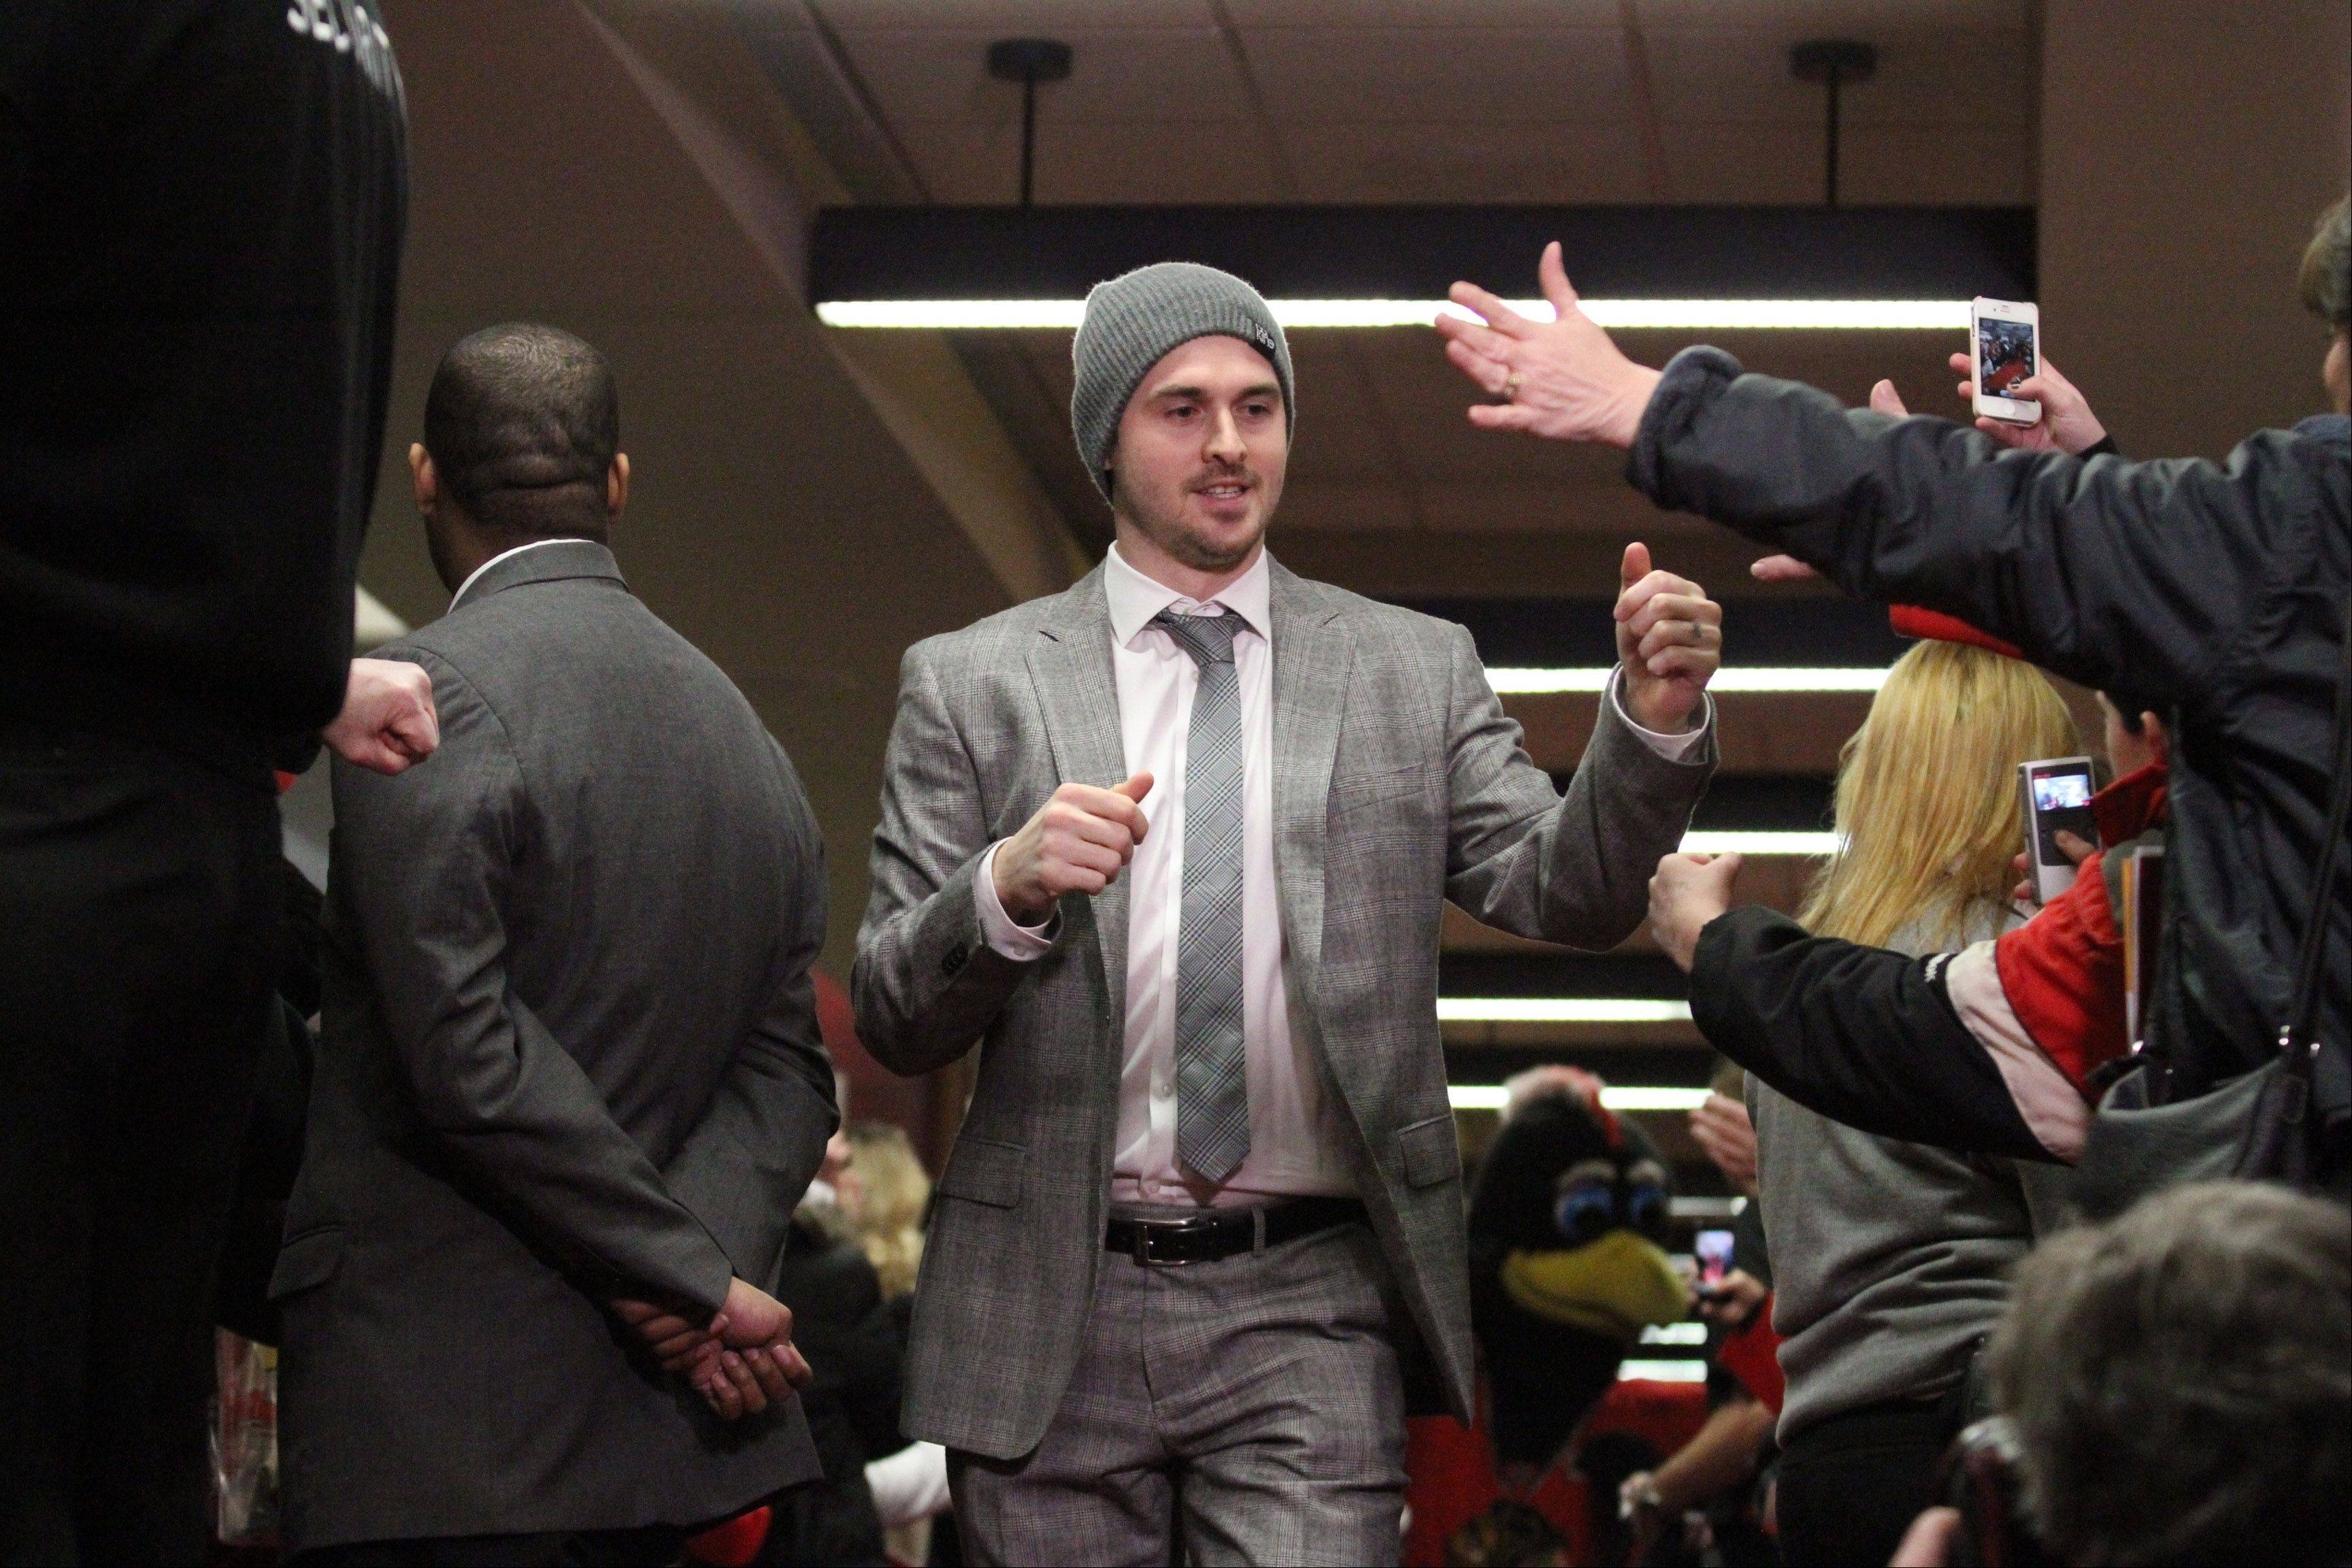 Chicago Blackhawks center Dave Bolland gives a thumbs up to fans during the red carpet event before the home opener.